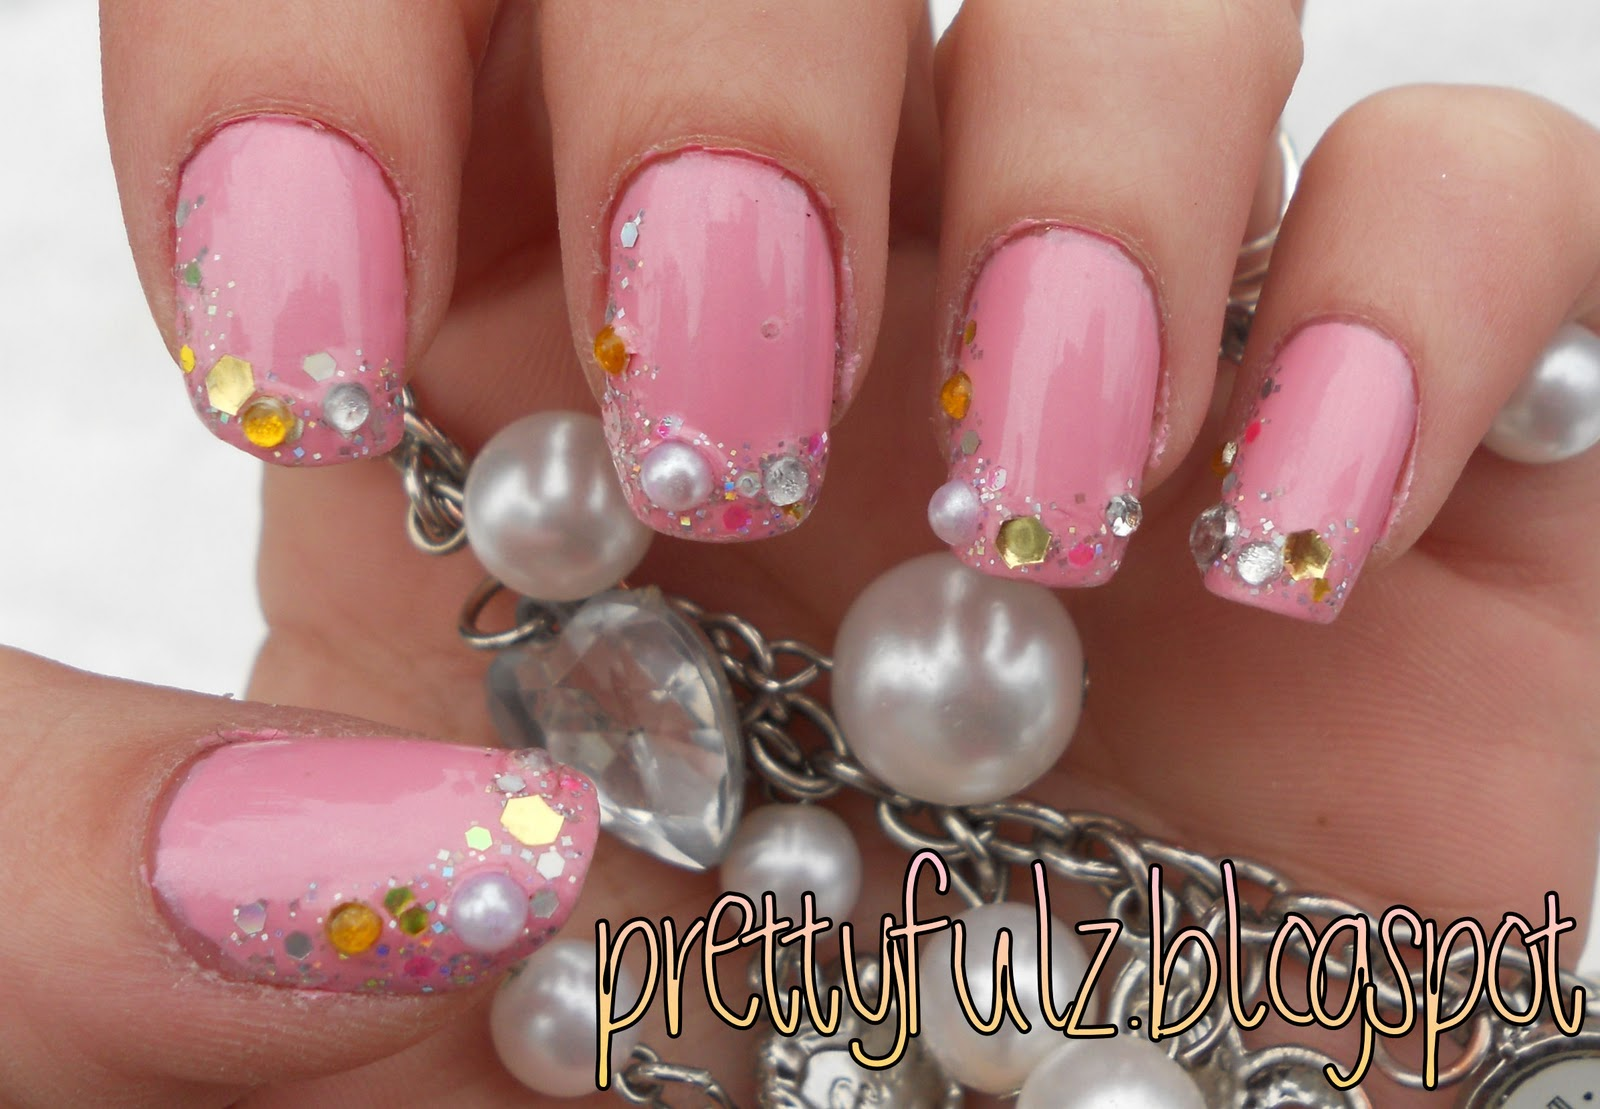 Prettyfulz: PINK DECO NAIL ART DESIGN | Japanese Inspired Nail Art ...